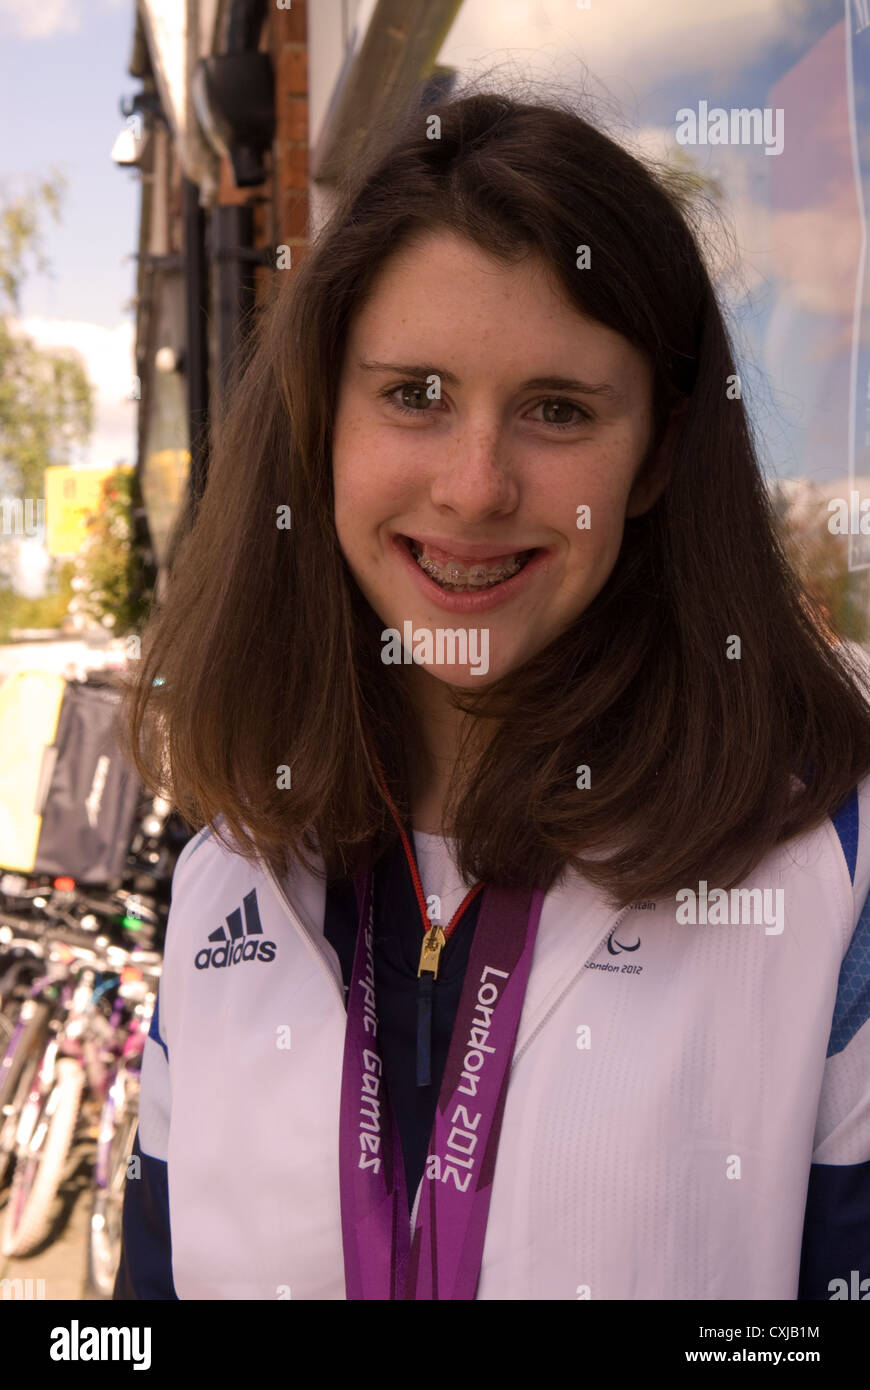 Olivia Breen, Bronze Paralympic medal winner at London 2012 Olympic games. - Stock Image